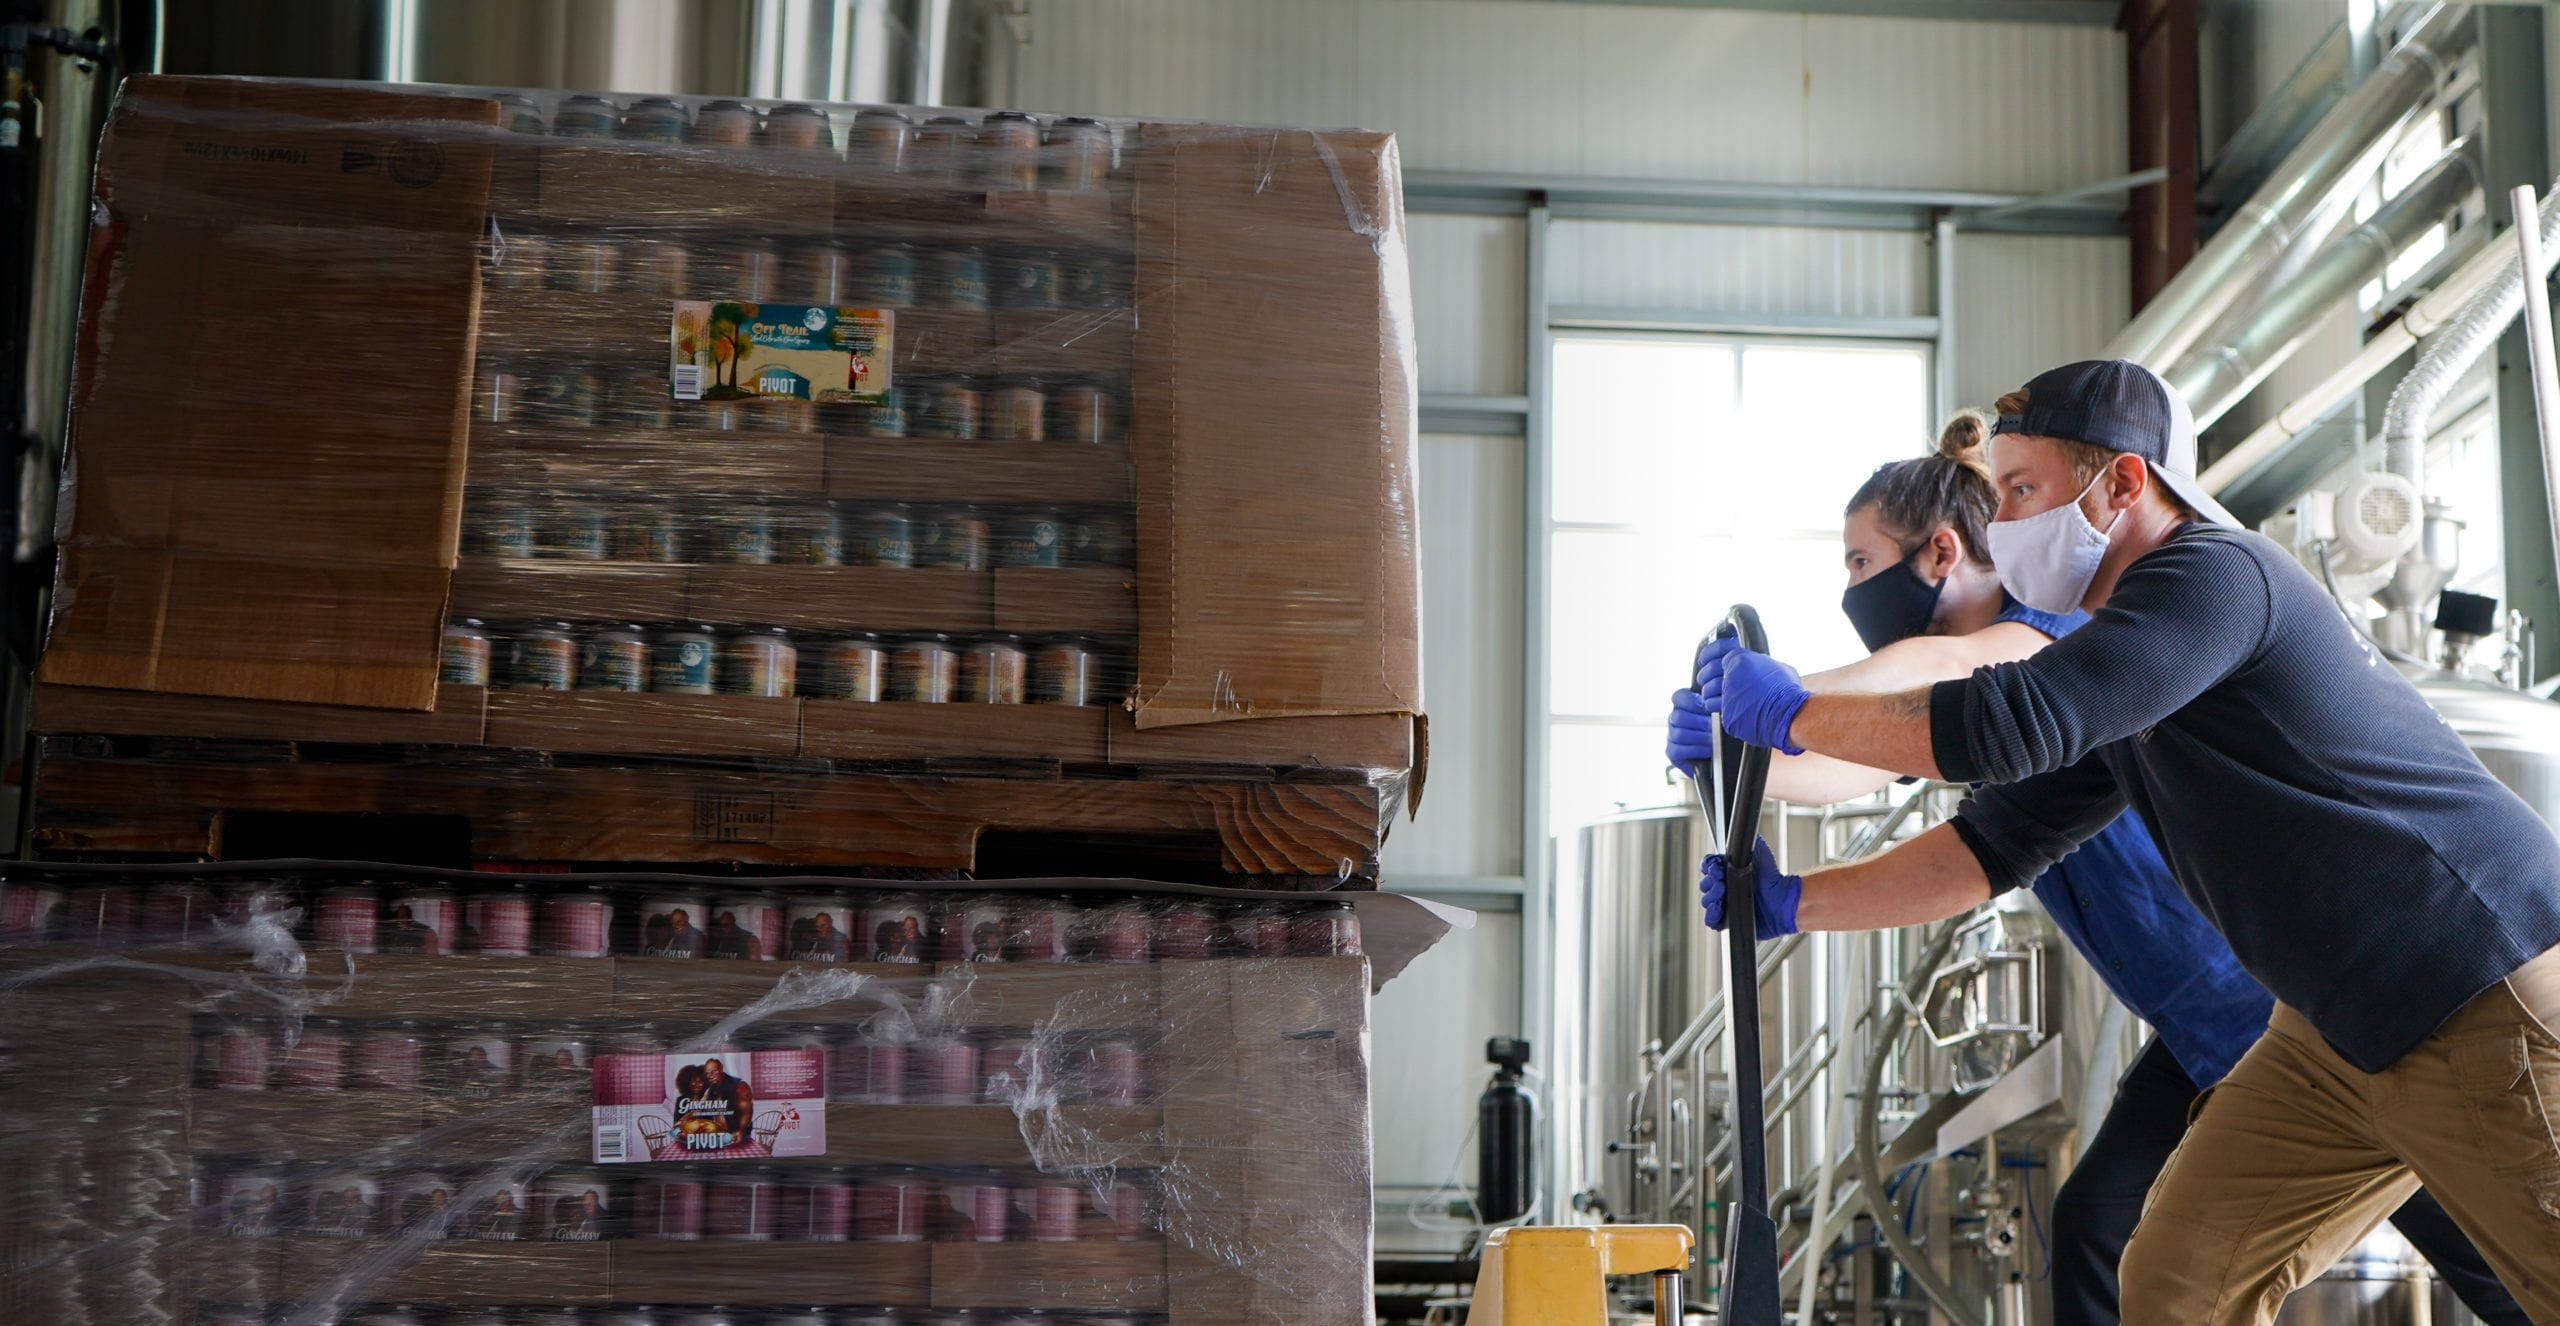 Pivot Brewing Cider shipment to Tavour. Picture showing products moving out of the building.